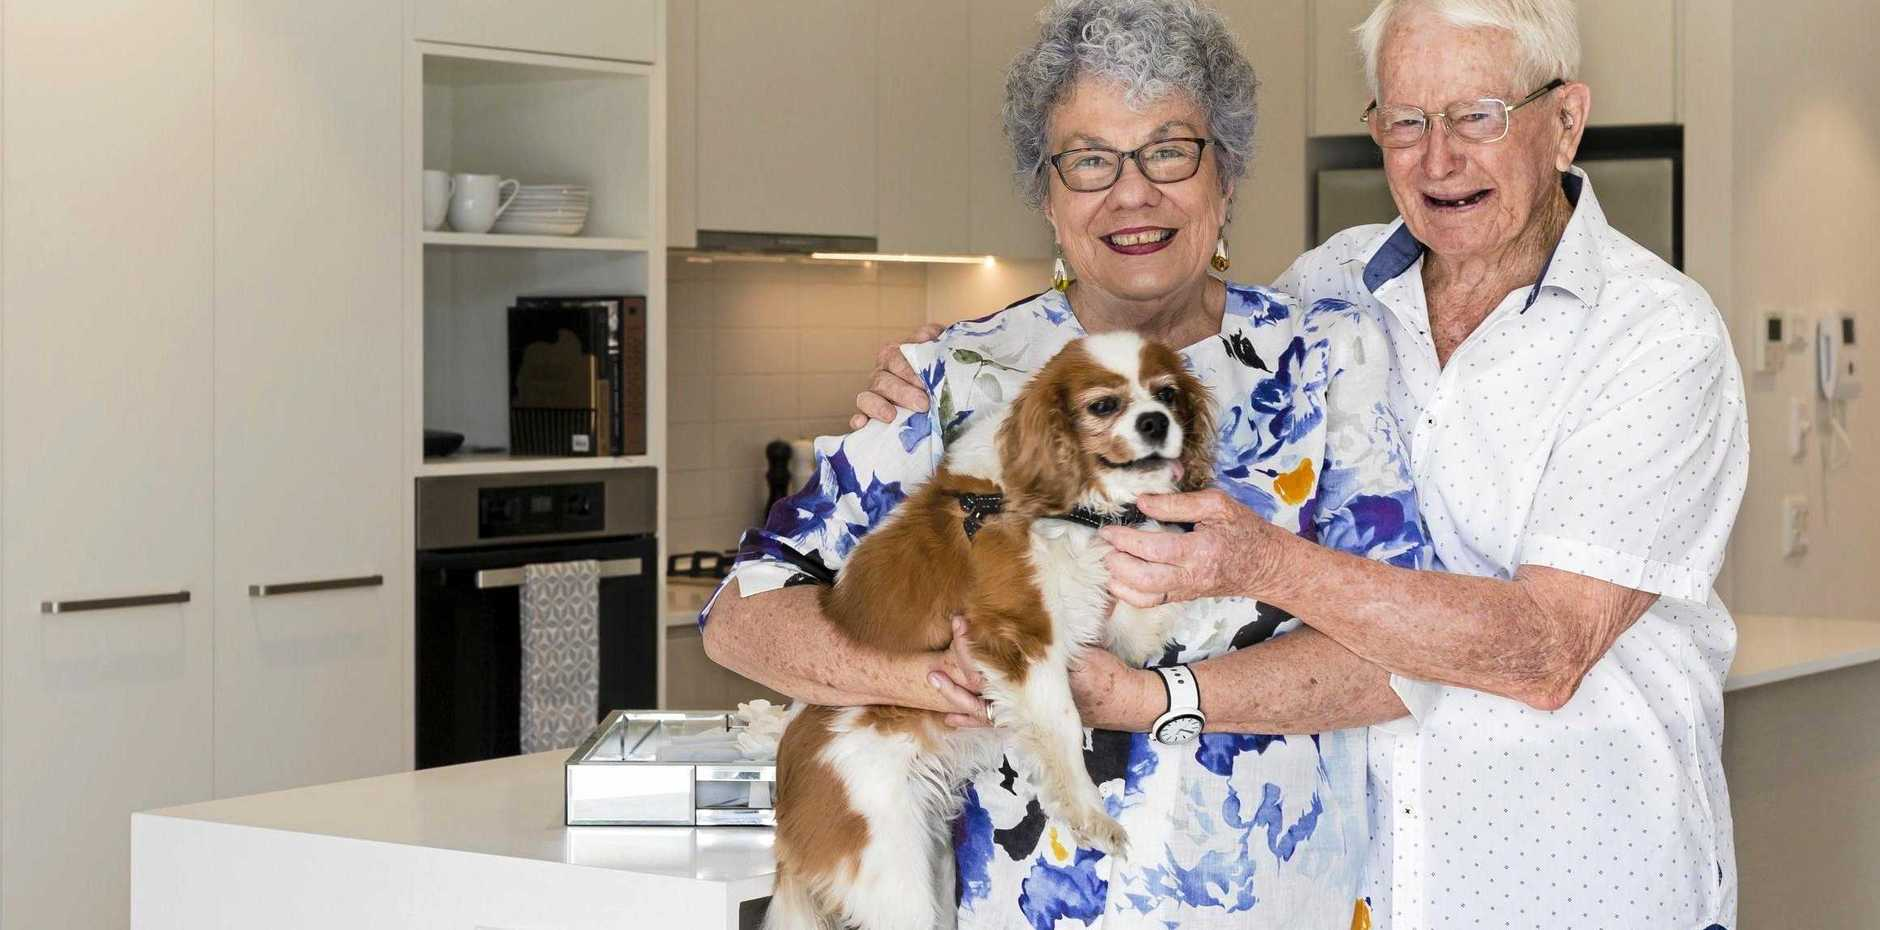 HIGH-TECH AGEING: Sue Kane, husband Leo and dog Poppy make themselves at home checking out the new smart apartment, which developers say is the way of the future for residents to